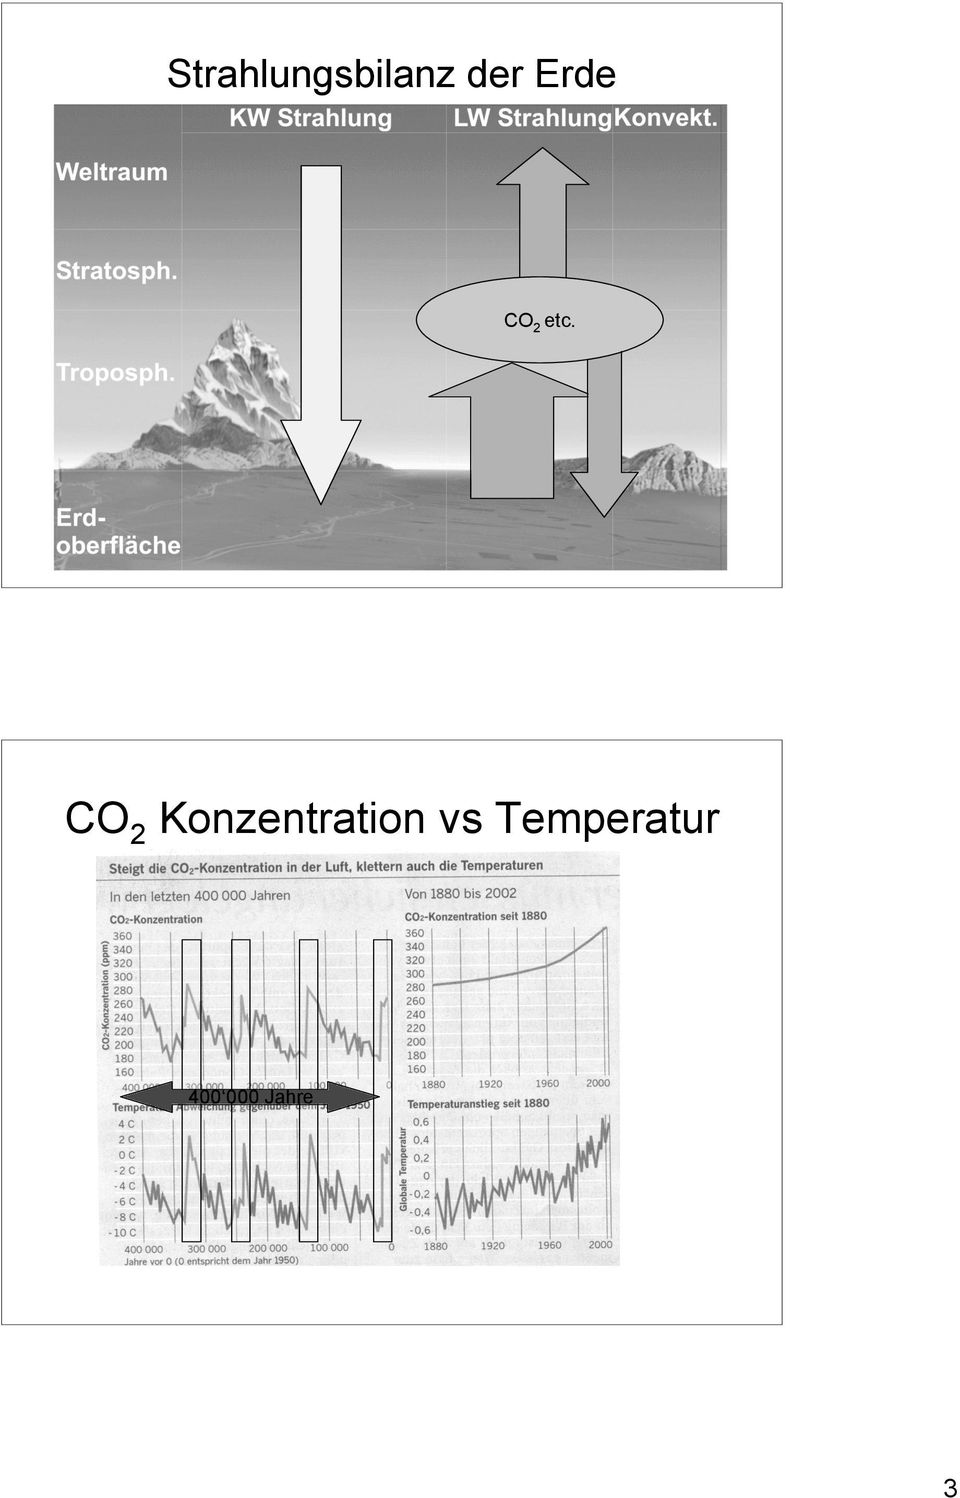 CO2 Konzentration vs